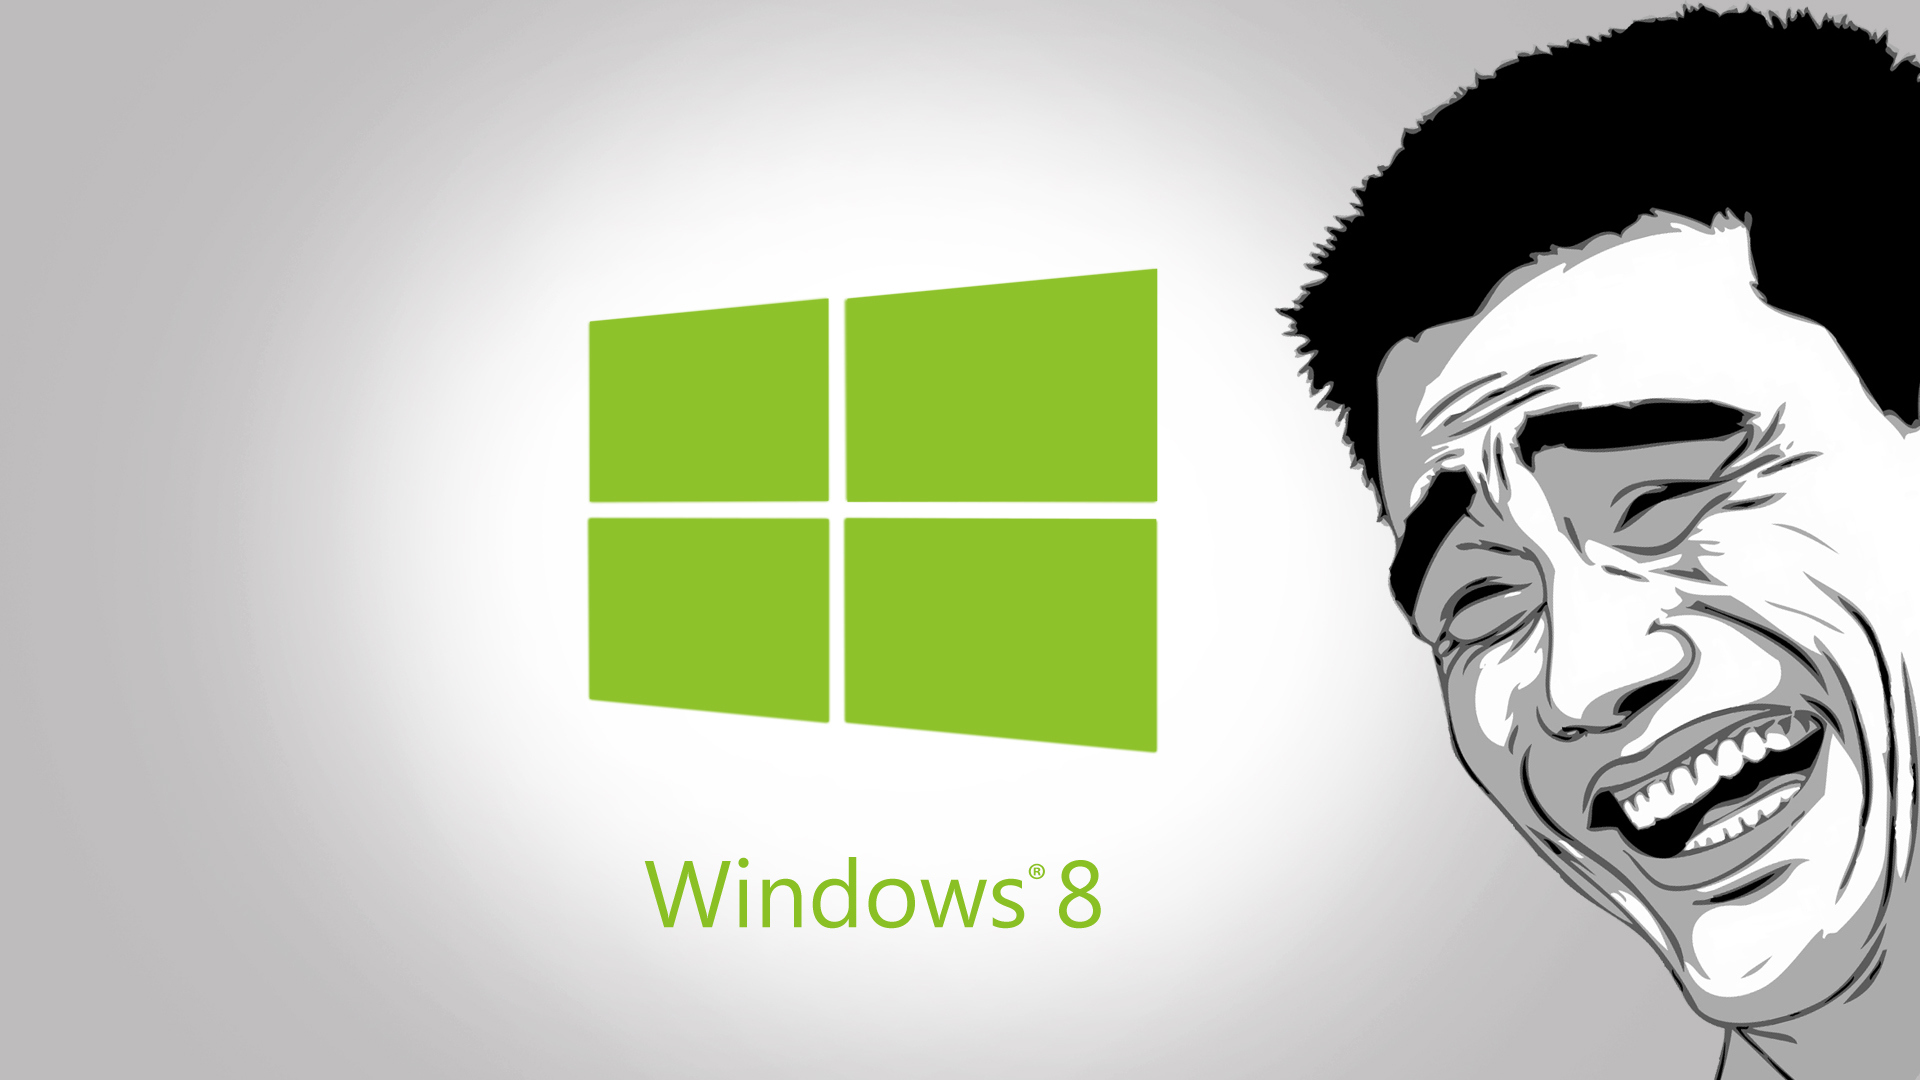 windows-8-please-comic-wallpaper-hd-2